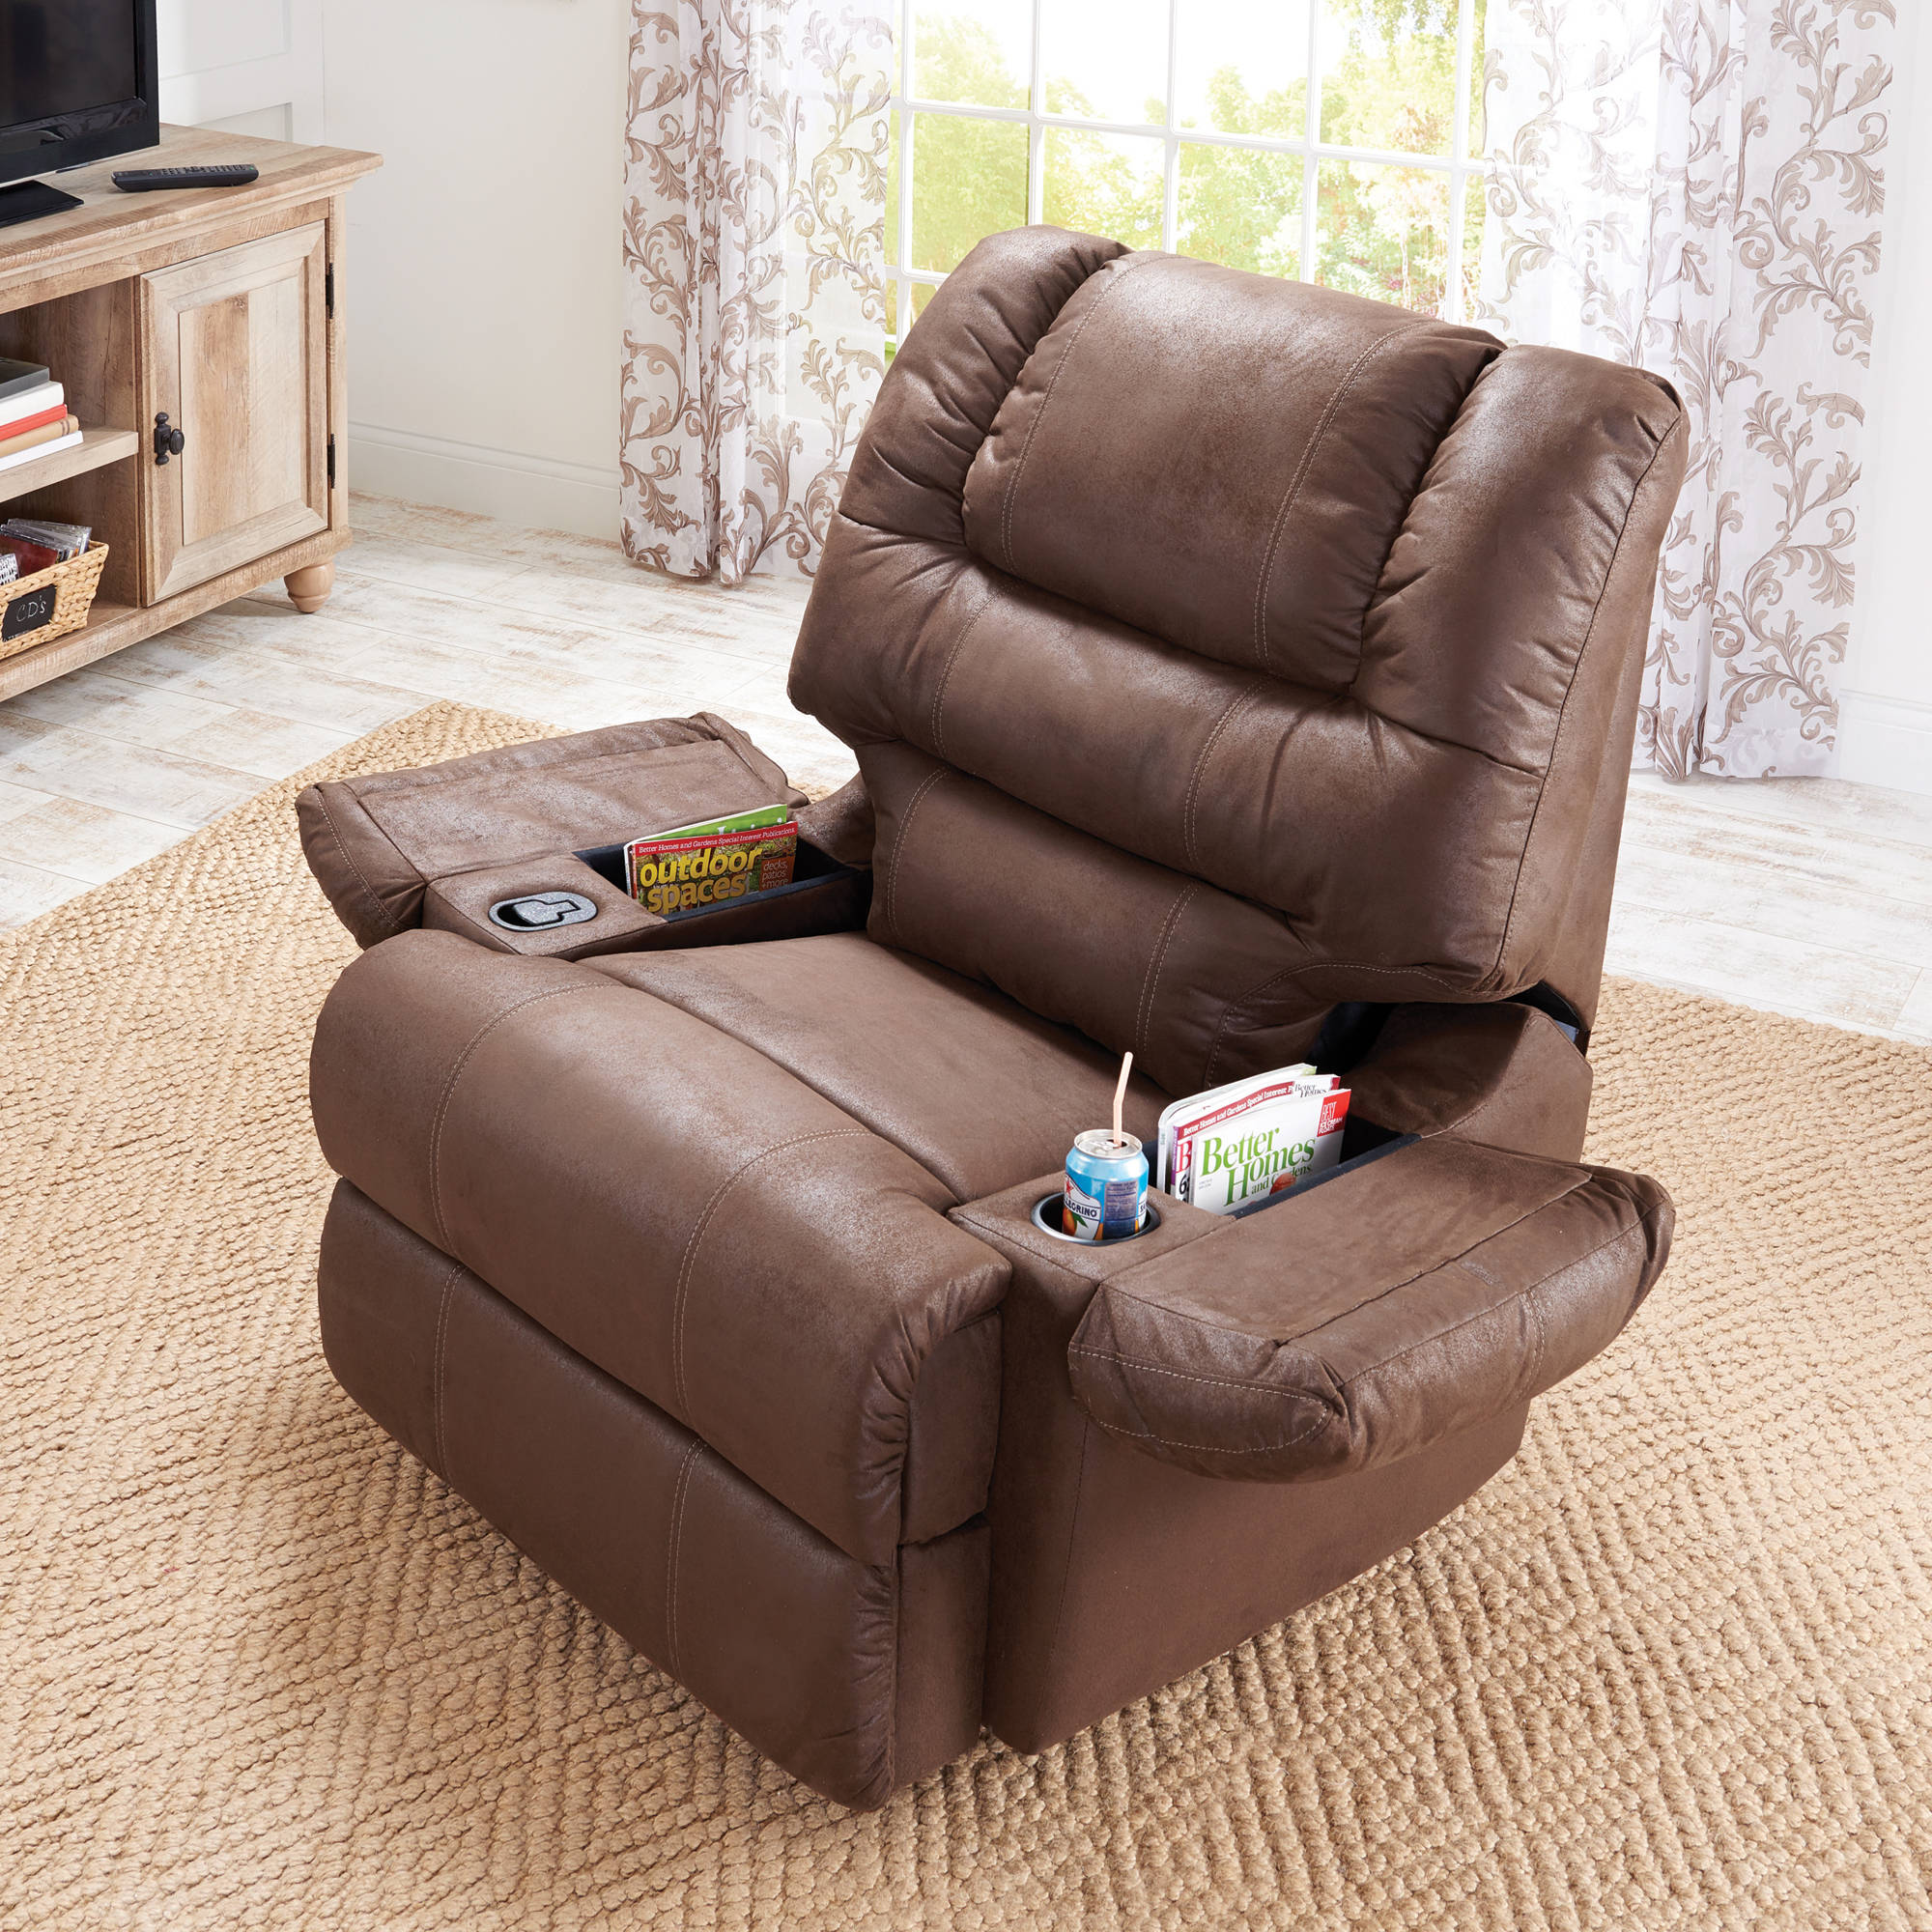 Double Wide Recliner Chair Better Homes And Gardens Deluxe Recliner